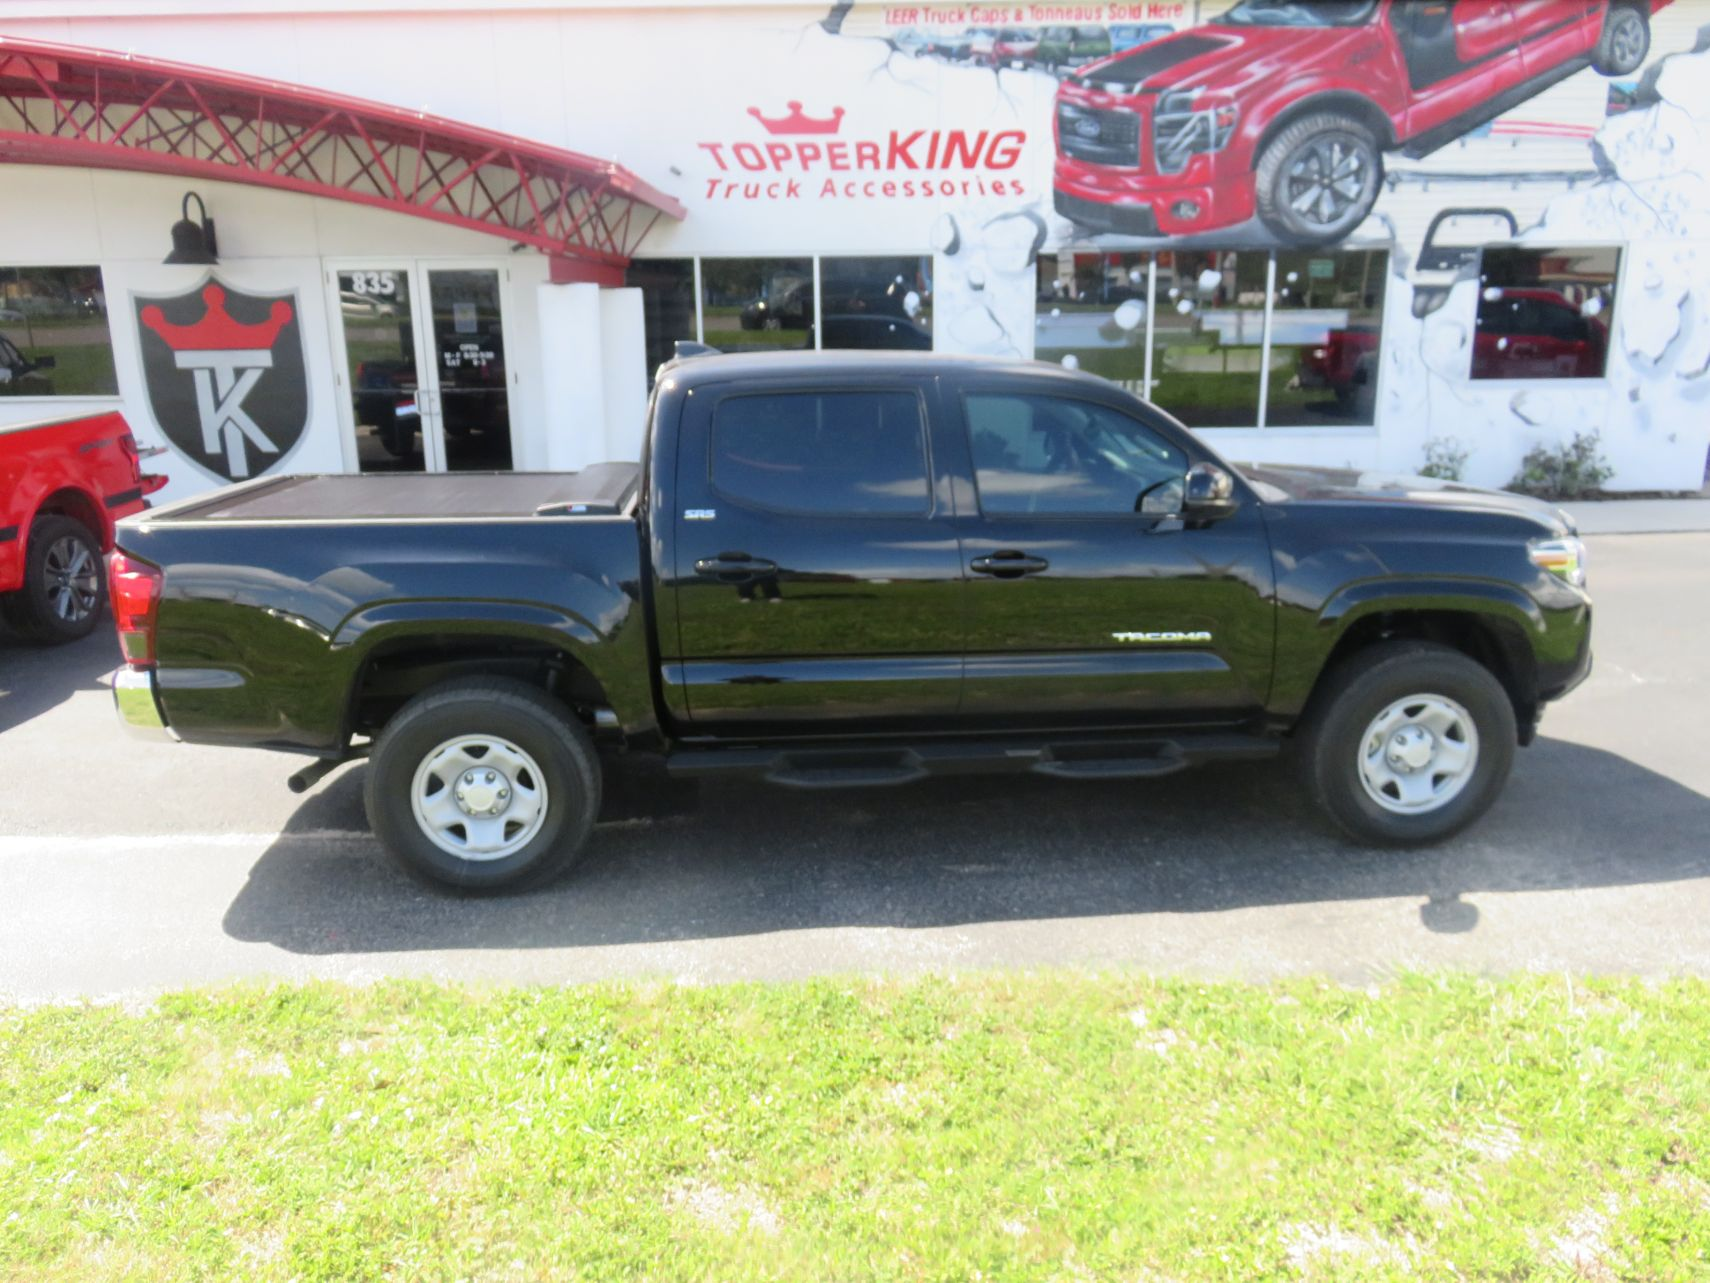 2020 Toyota Tacoma with LEER Switchblade, Side Steps, Tint, Hitch by TopperKING Brandon 813-689-2449 or Clearwater FL 727-530-9066. Call Now!